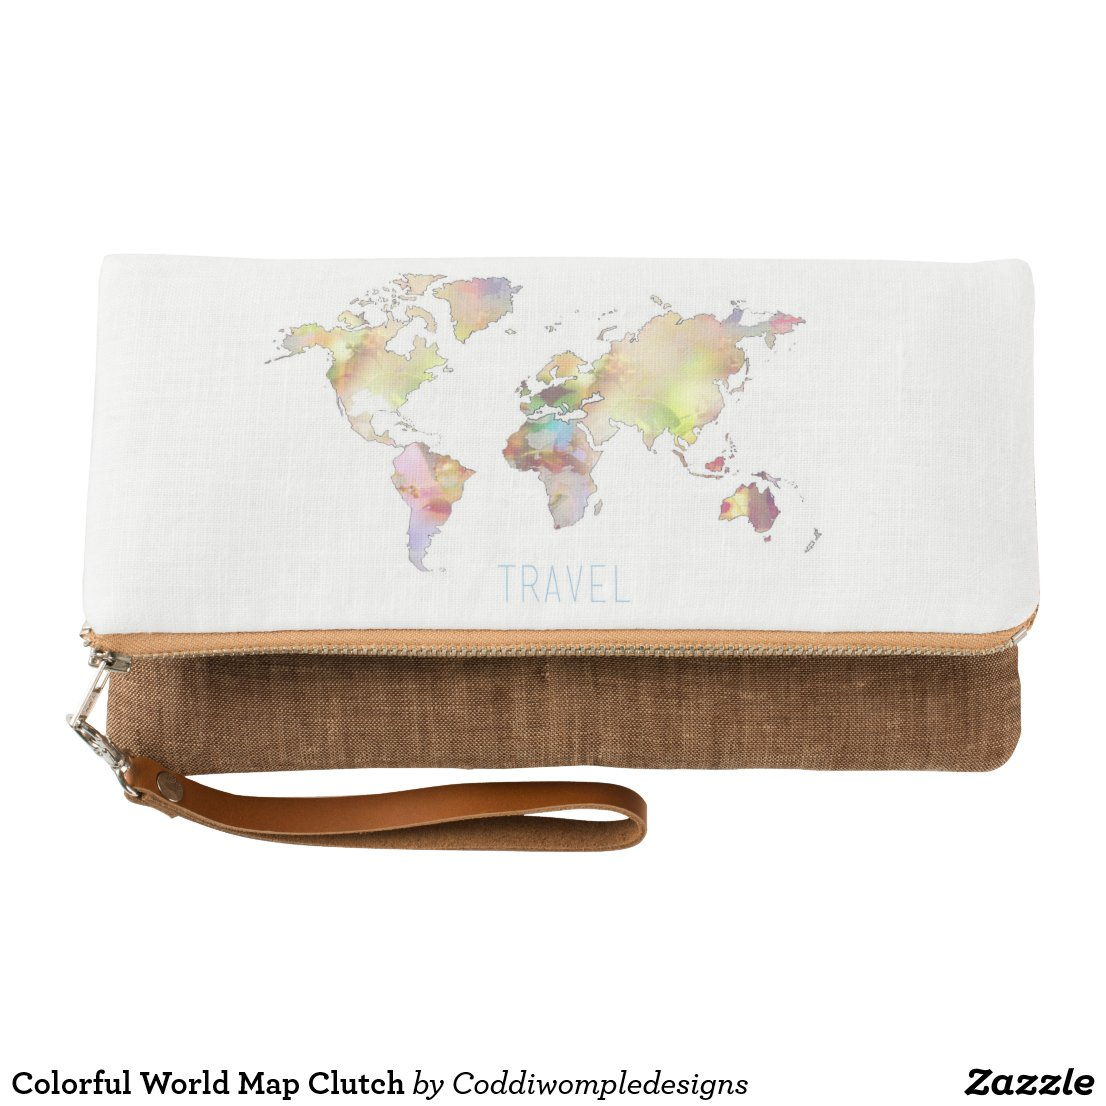 Colorful World Map Clutch